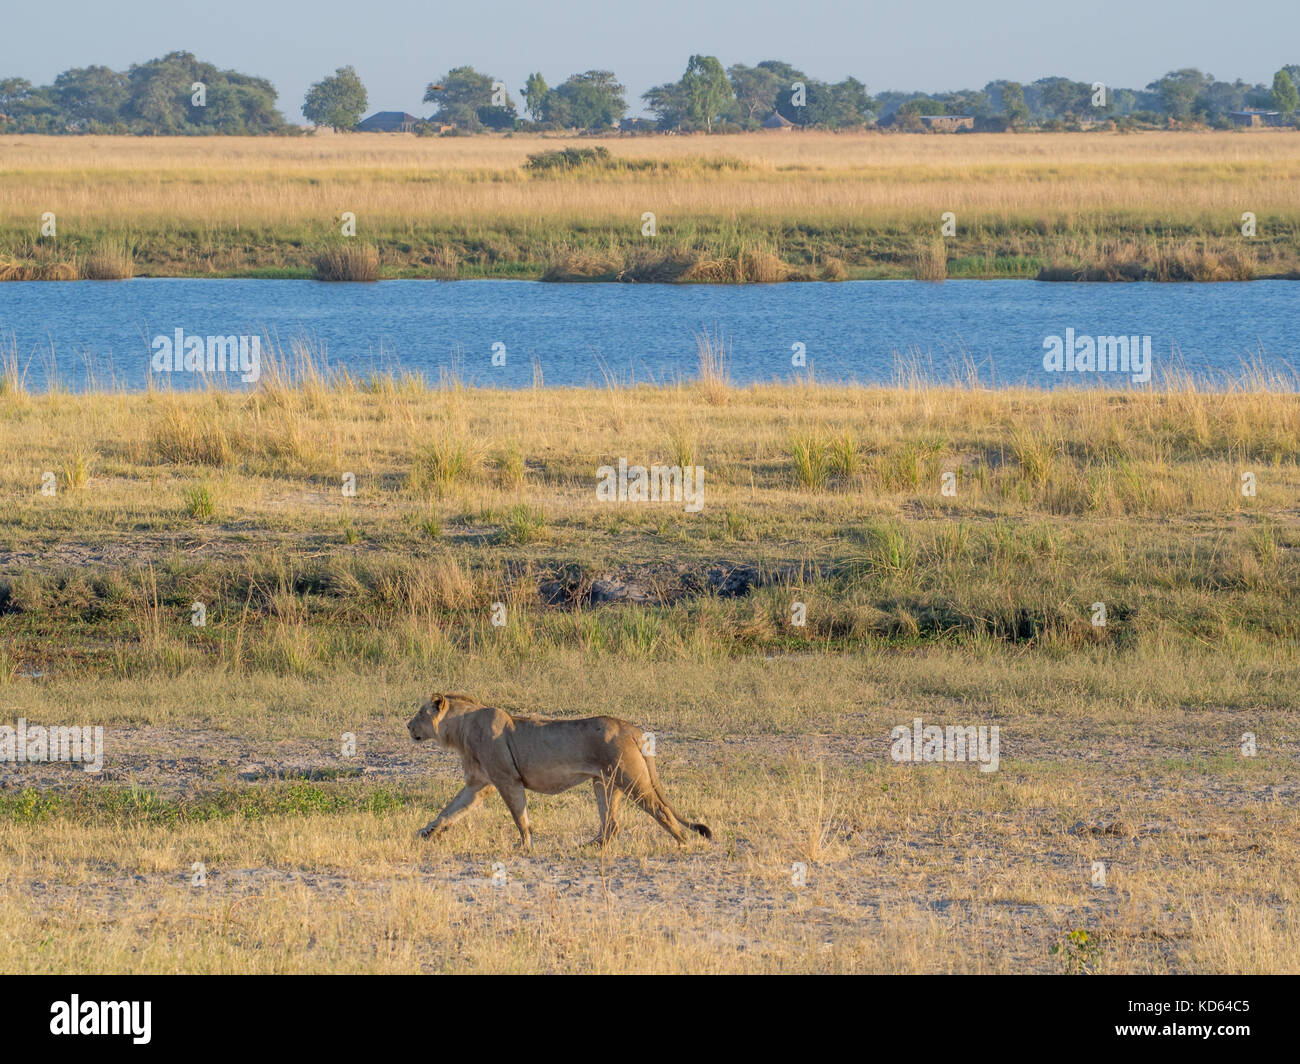 Female lione walking along bank of Chobe River with human settlement in background on Namibian side, Chobe National - Stock Image